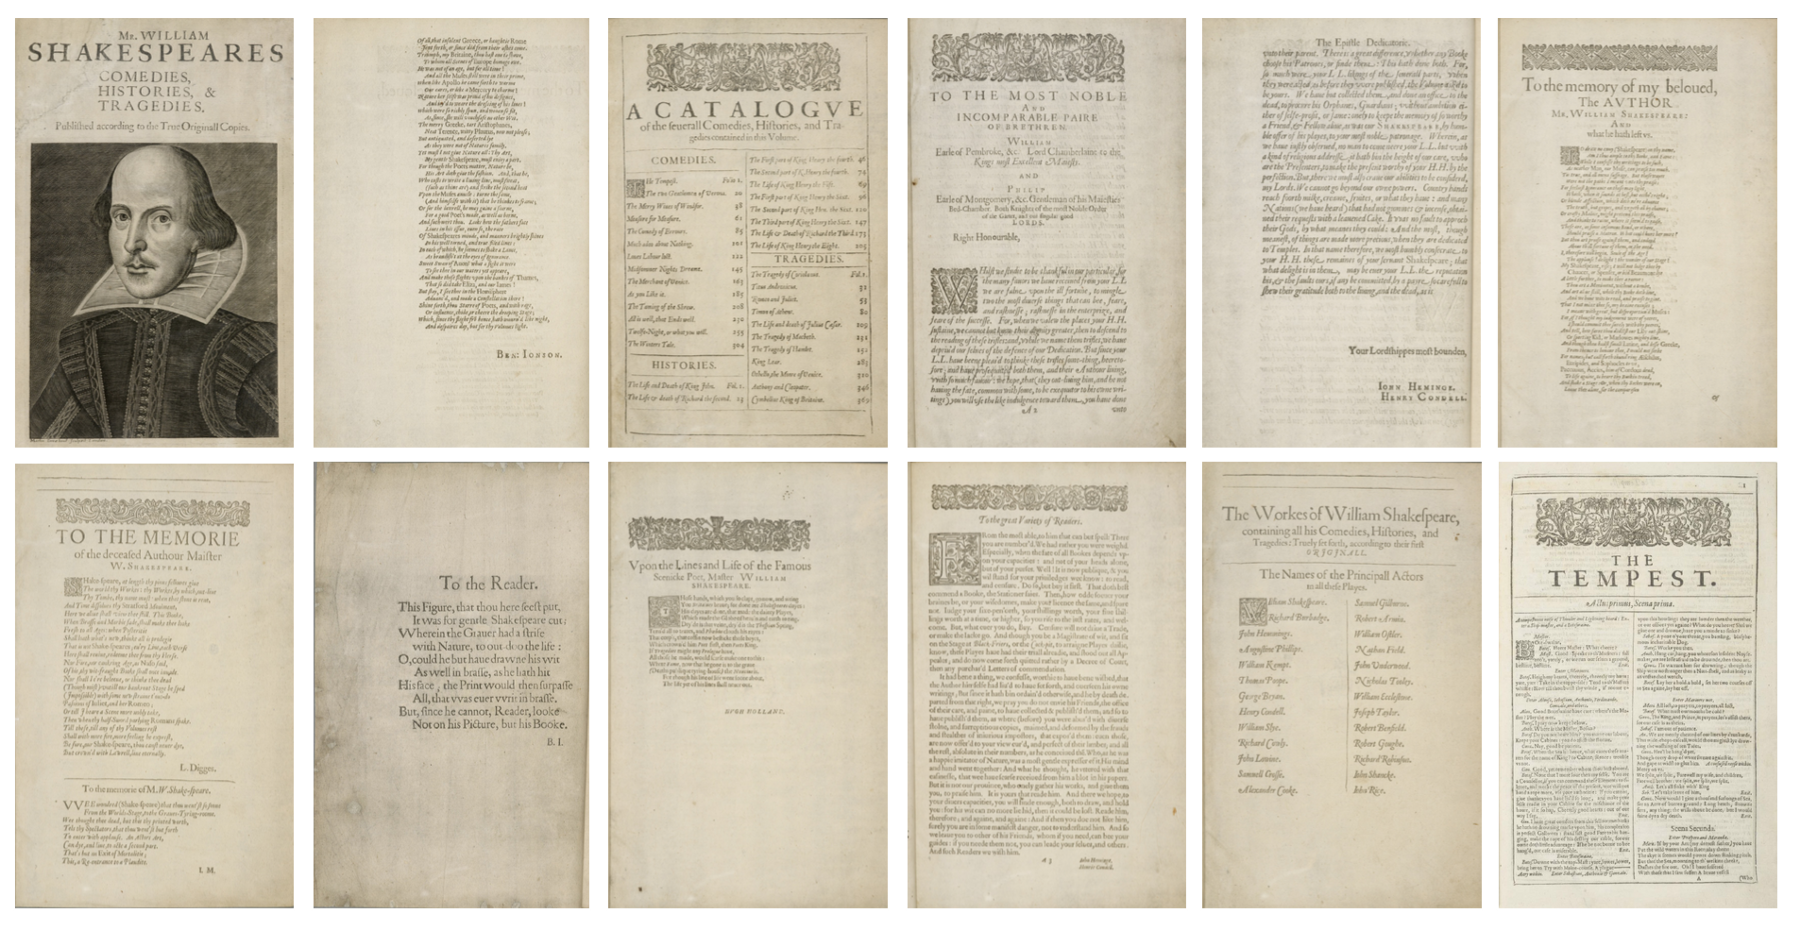 Extracts from the First Folio